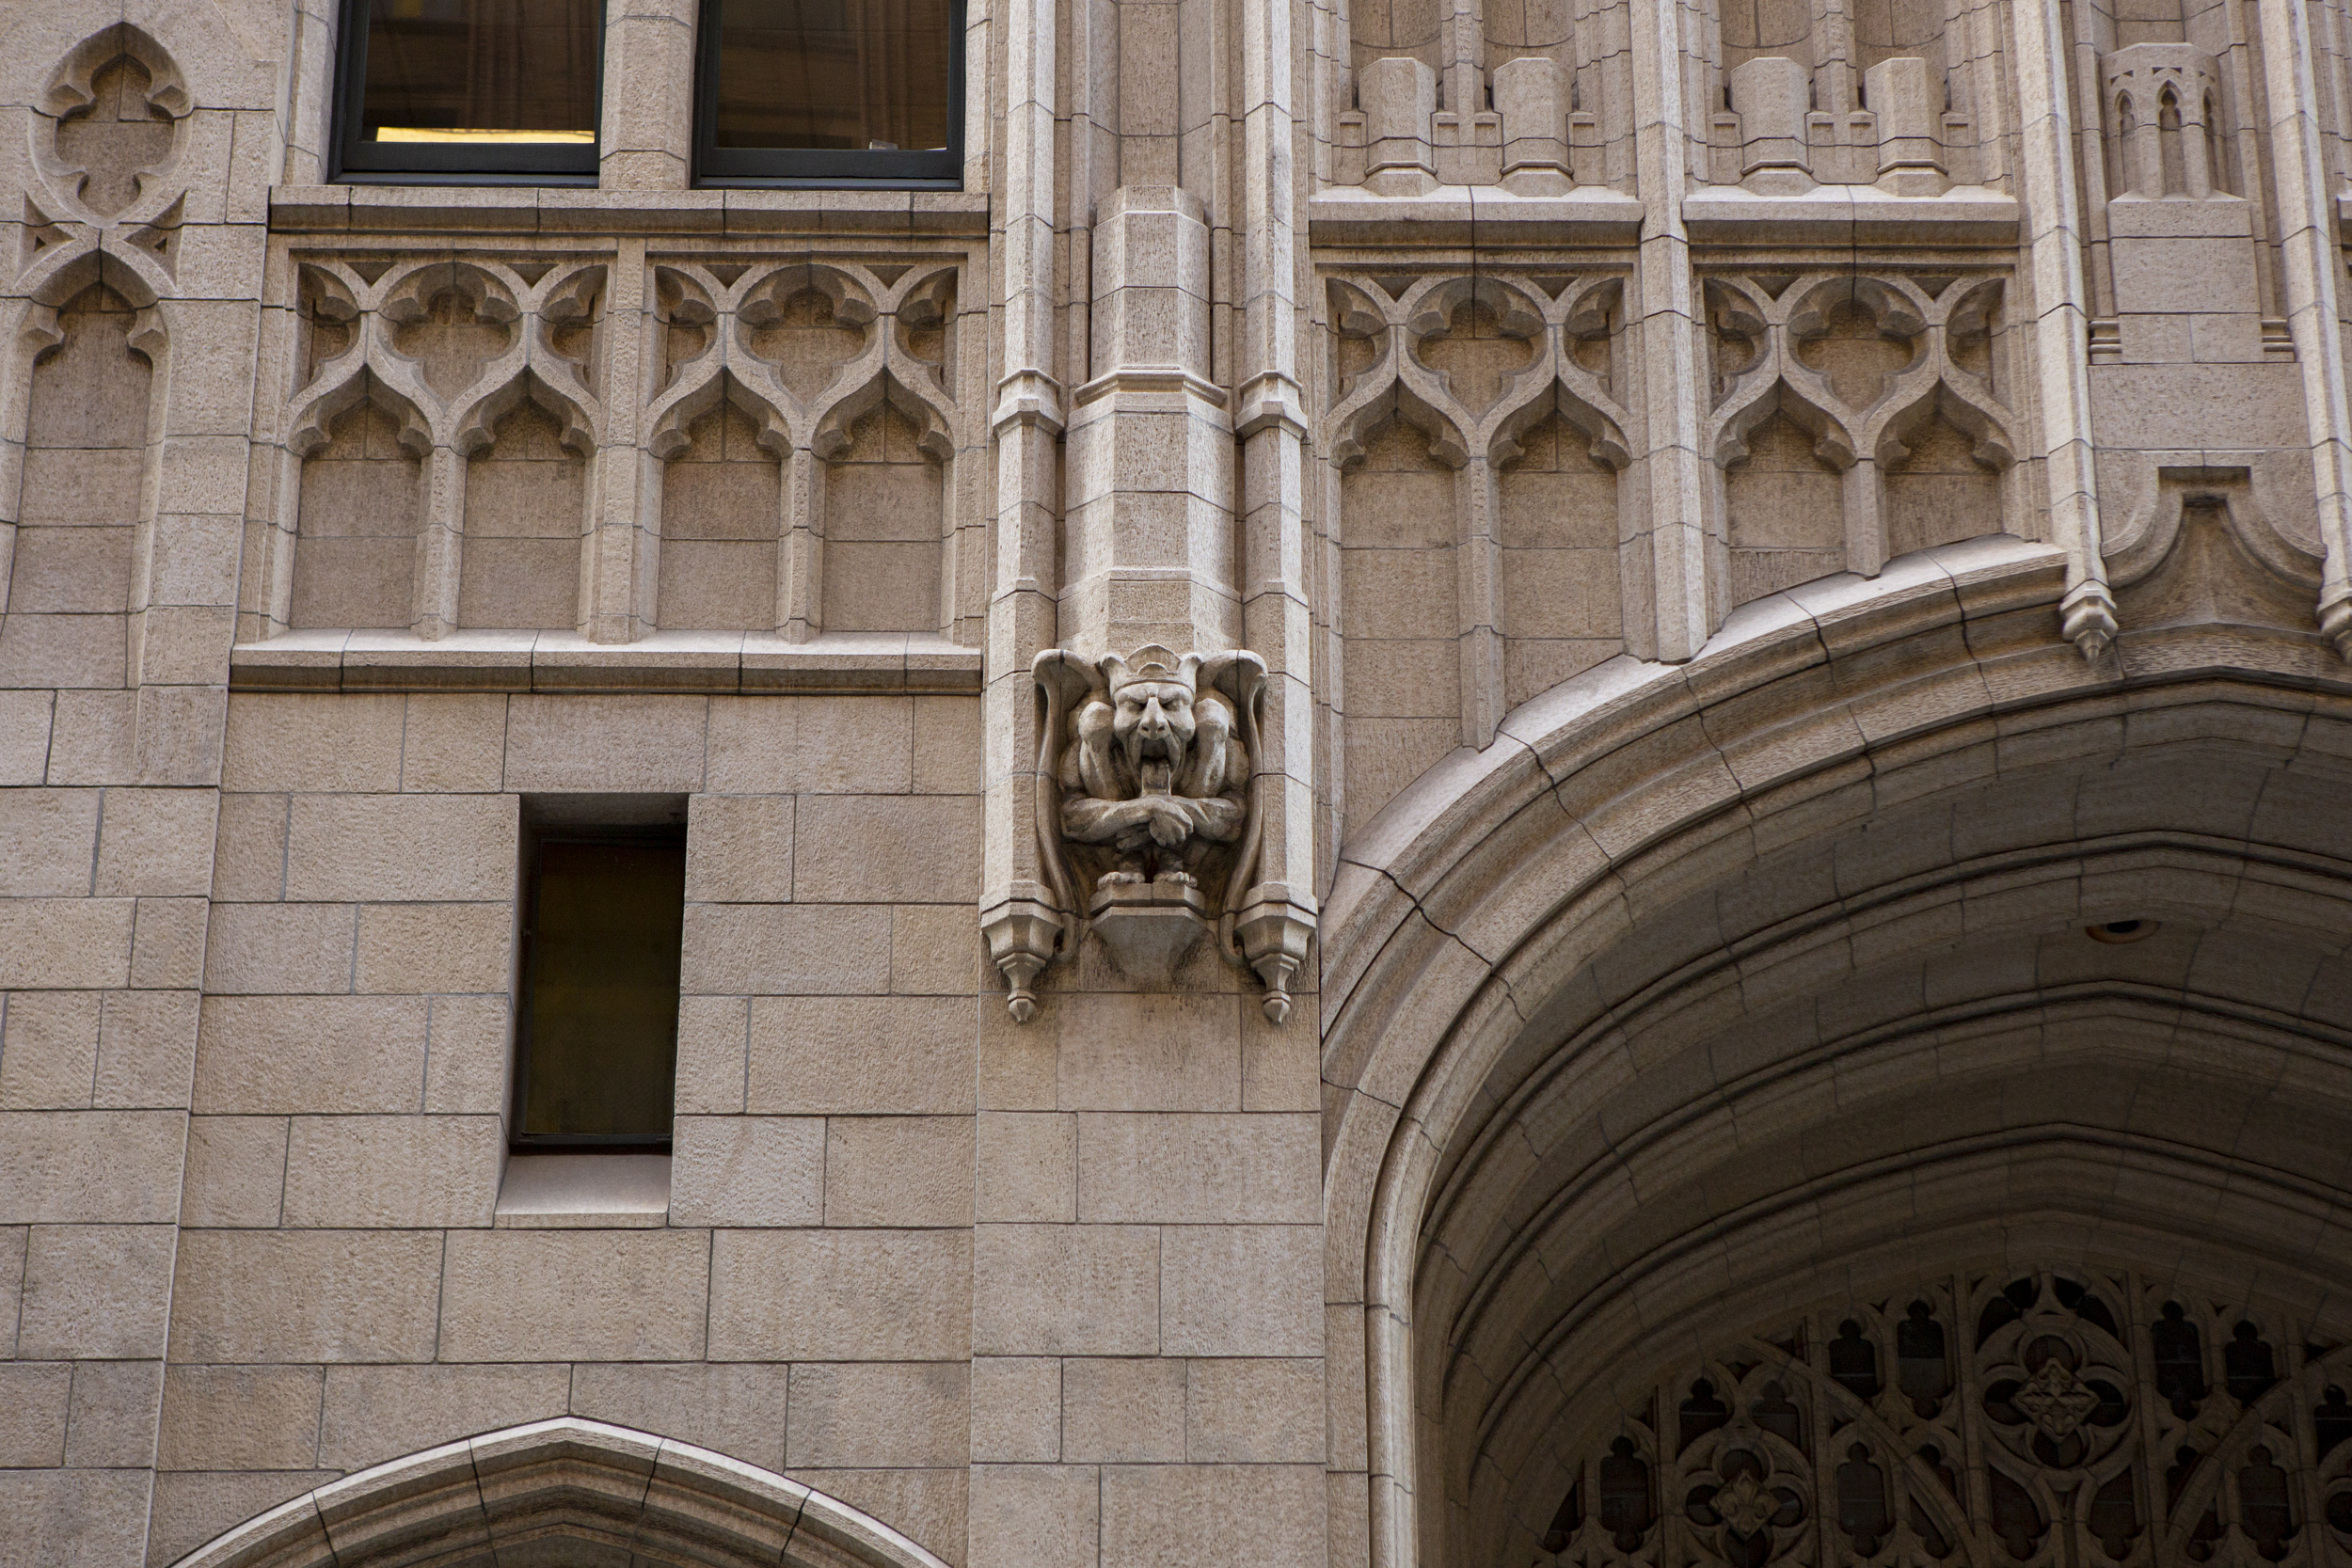 The Russ Building at 235 Montgomery Street terracotta ornamentation, image by Andrew Campbell Nelson